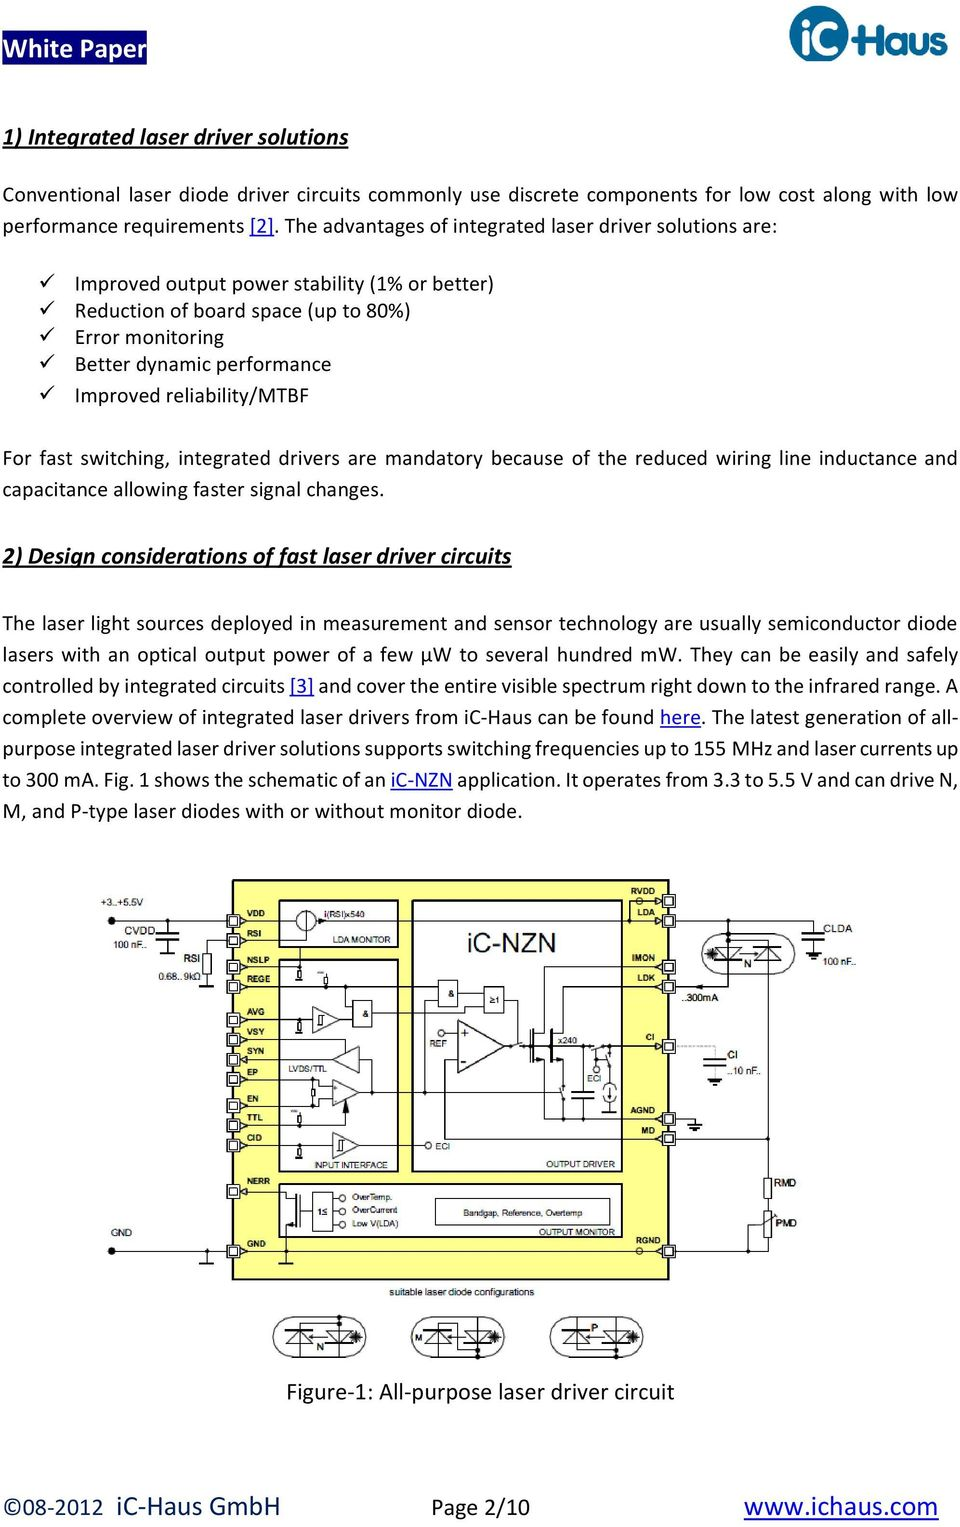 Design And Test Of Fast Laser Driver Circuits Pdf Free Project Circuit Diagram Diode Reliability Mtbf For Switching Integrated Drivers Are Mandatory Because The Reduced Wiring